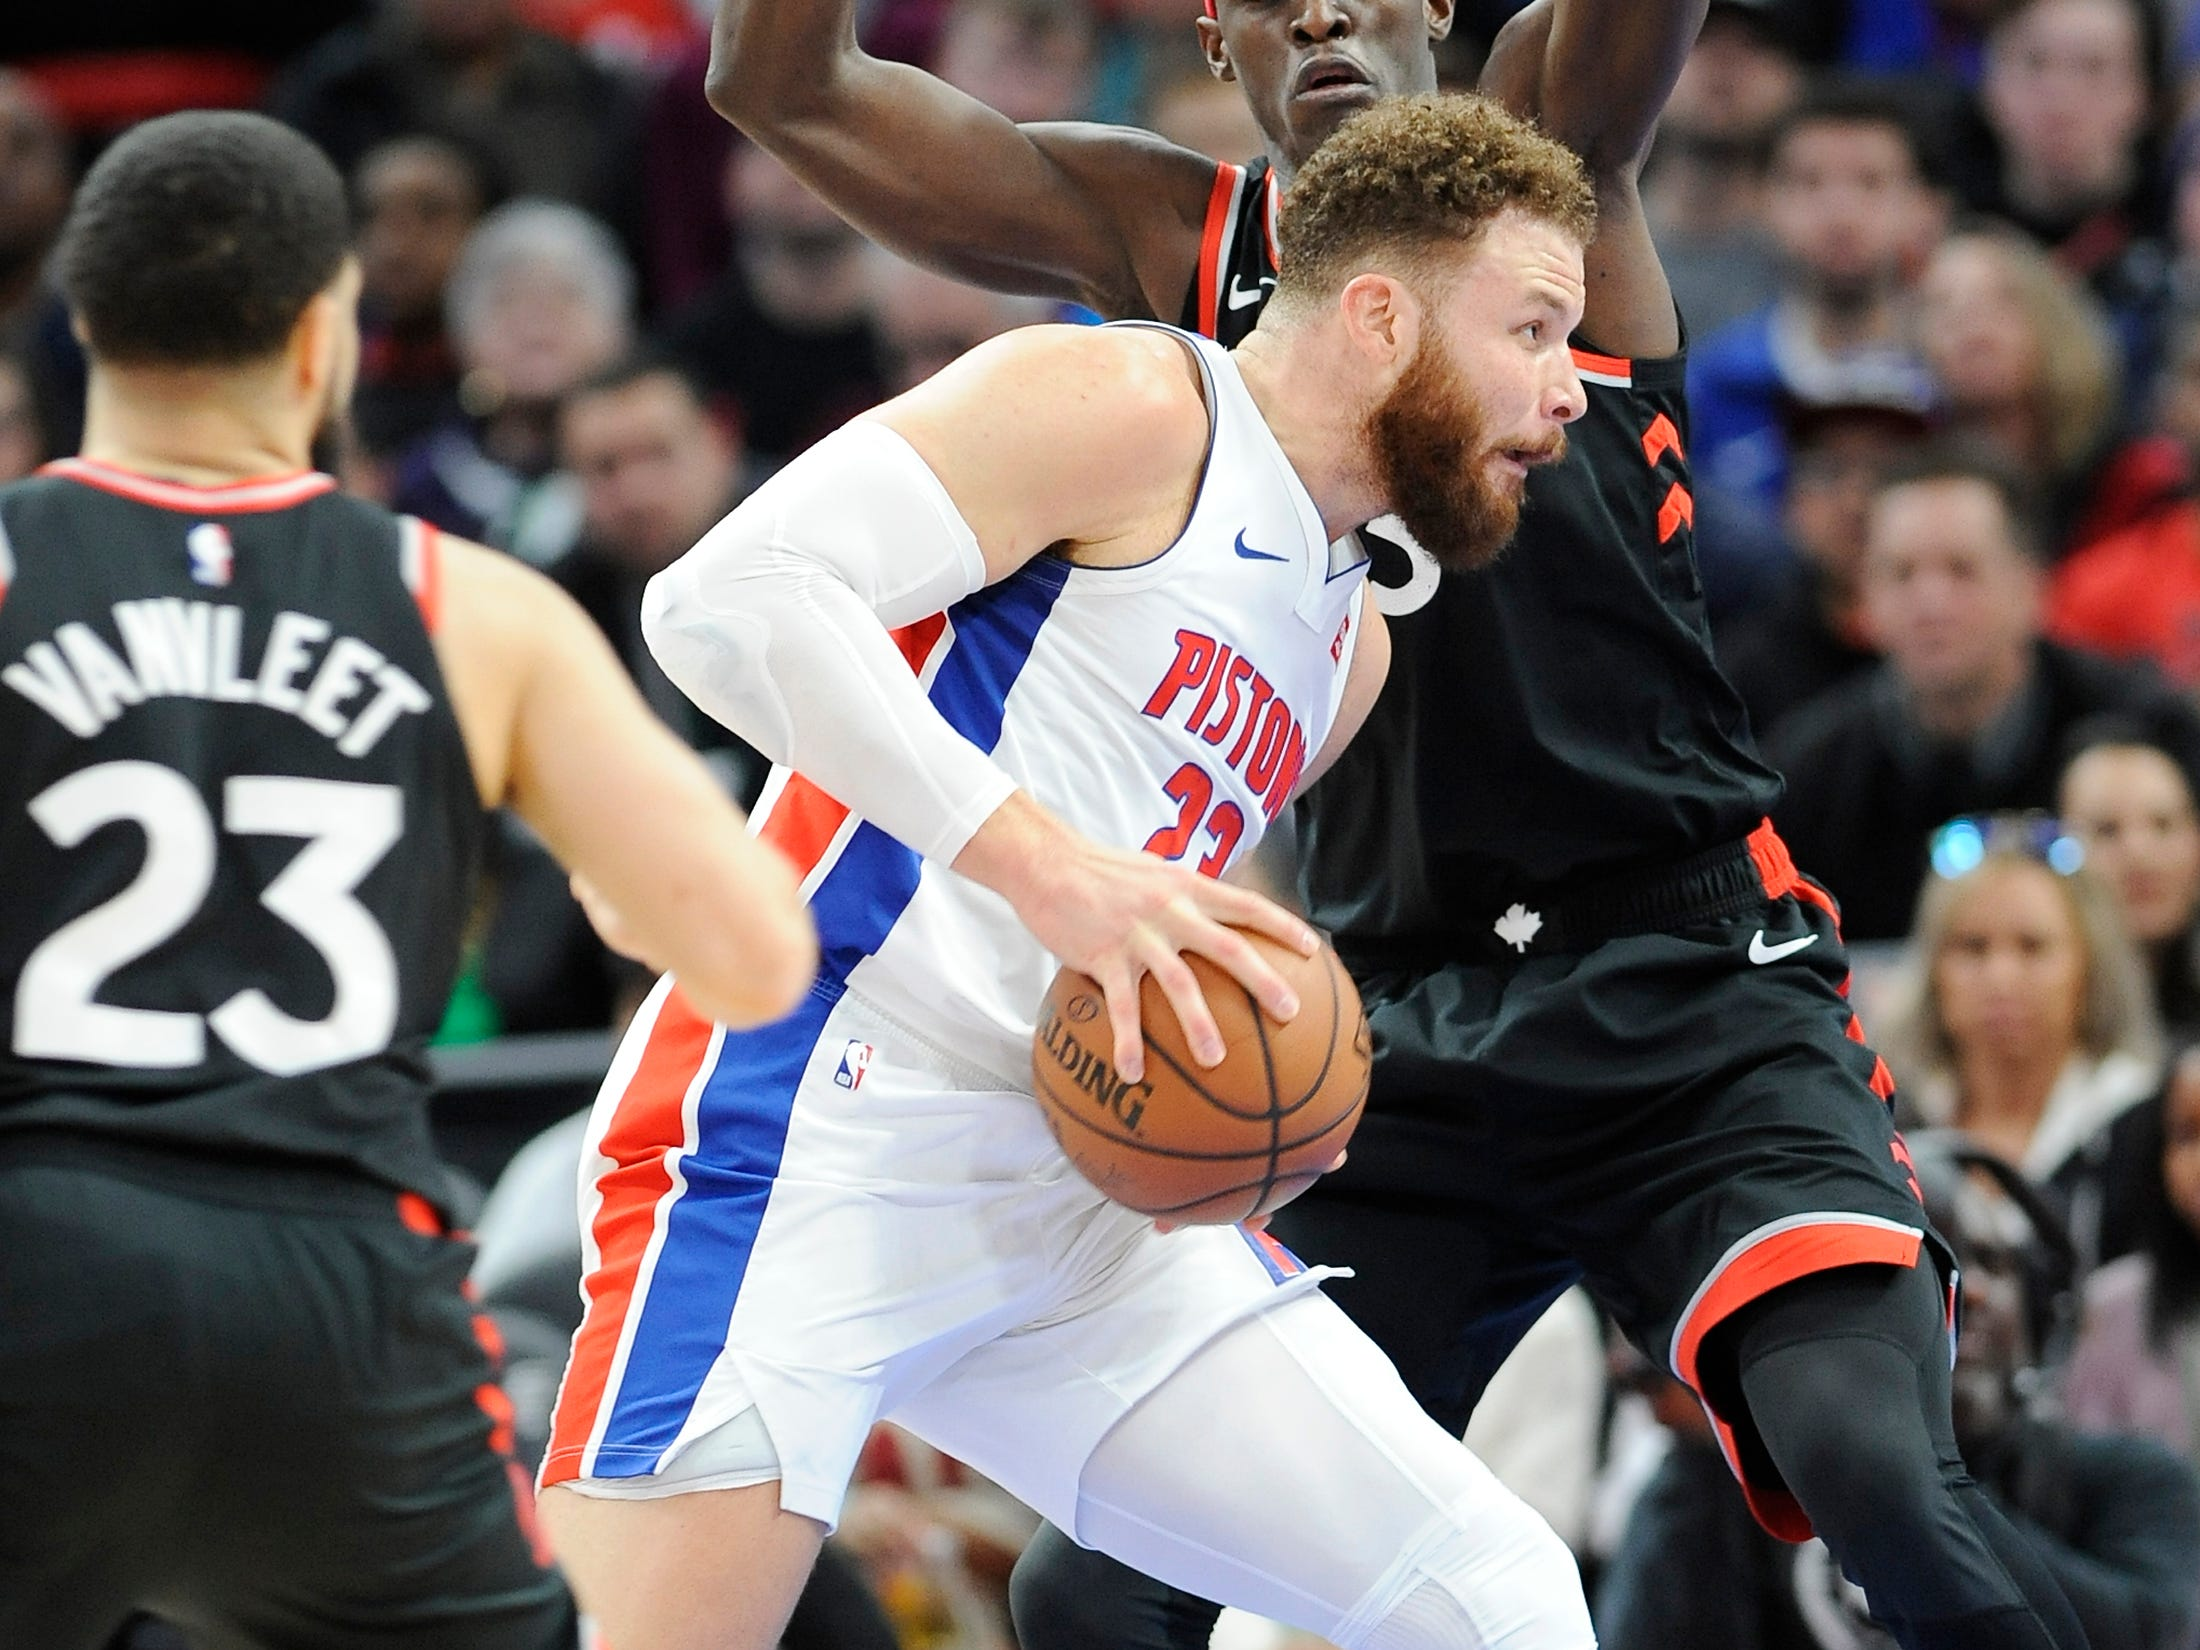 Little rest ahead as Pistons fight for playoff spot in tight Eastern Conference race